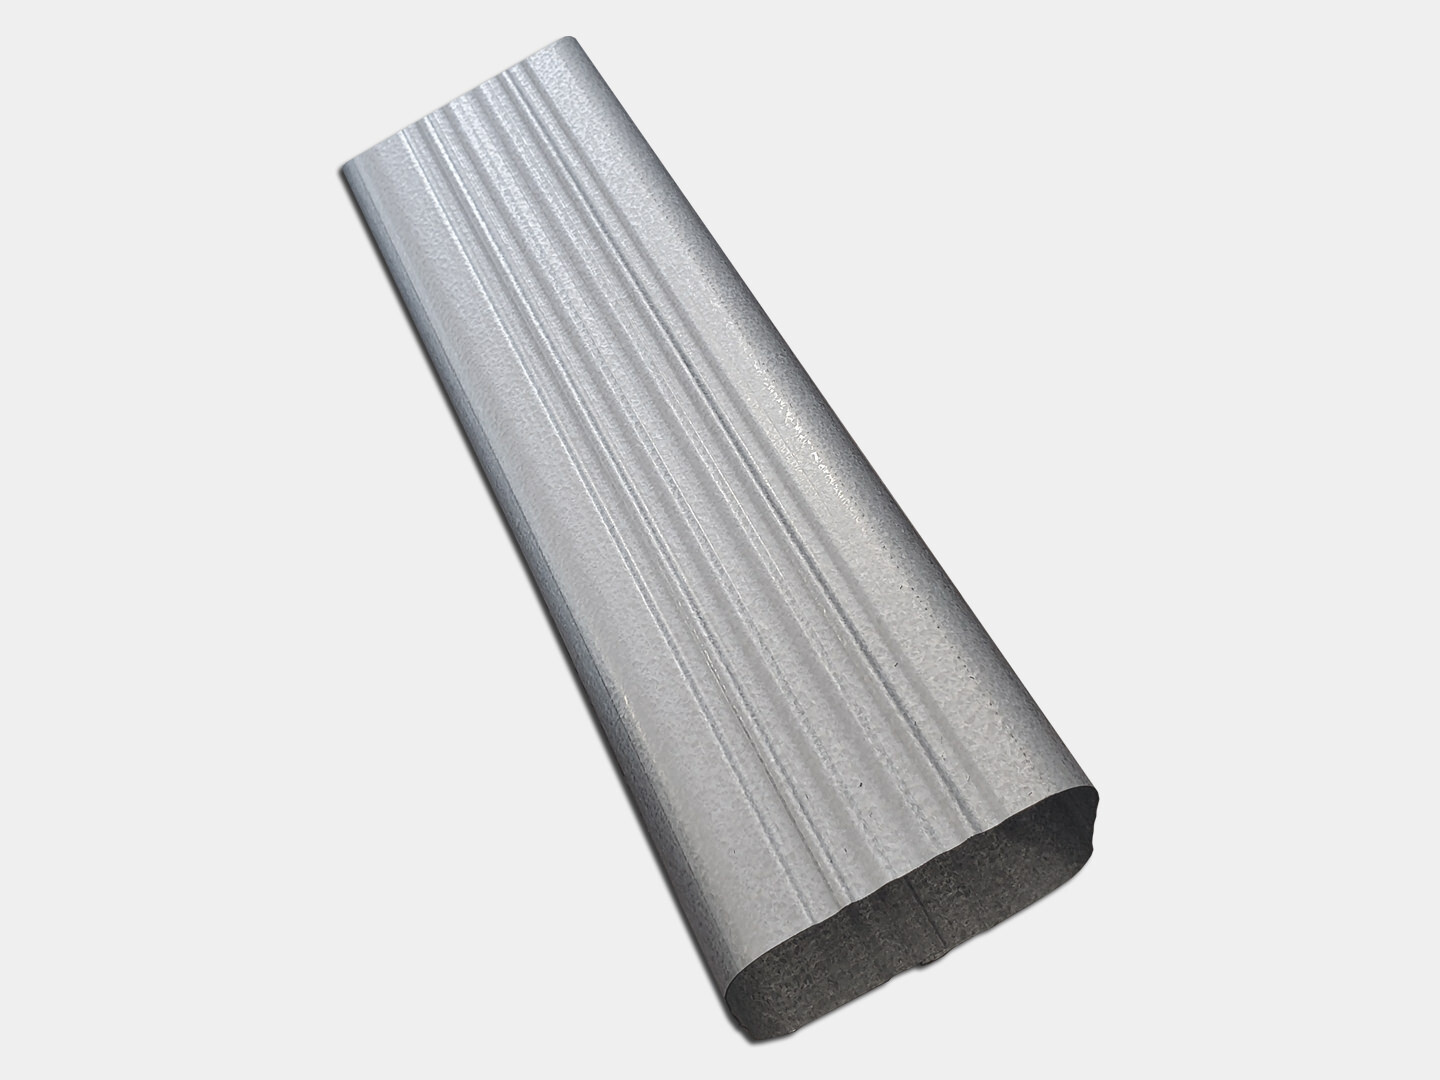 Square Corrugated Galvalume Downspout